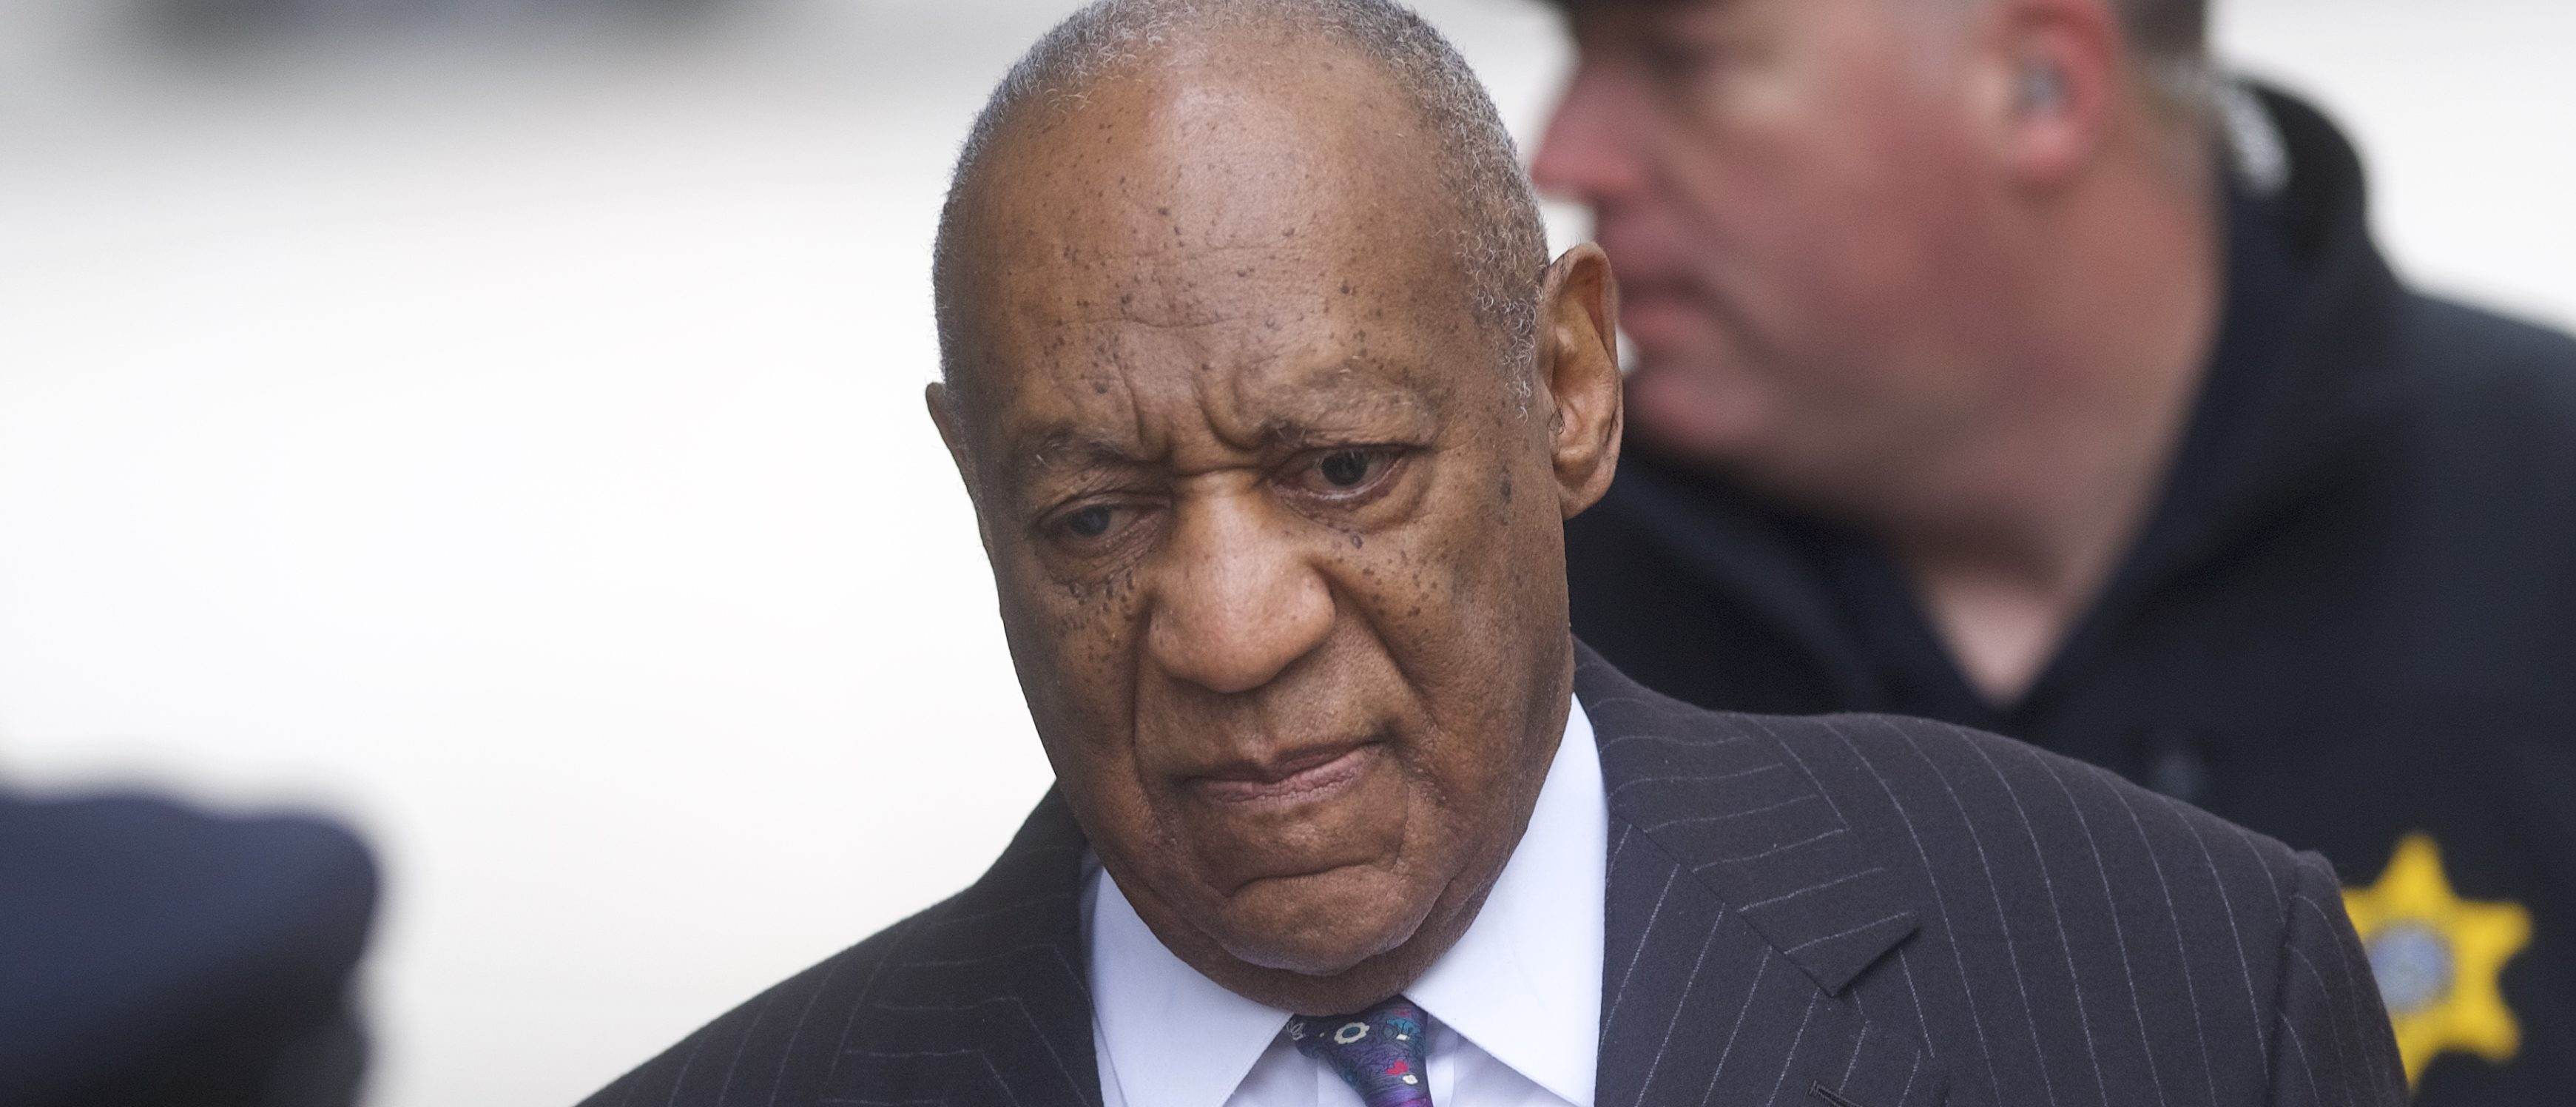 NORRISTOWN, PA - APRIL 9: Bill Cosby arrives at the Montgomery County Courthouse for the first day of his sexual assault retrial on April 9, 2018 in Norristown, Pennsylvania. A former Temple University employee alleges that the entertainer drugged and molested her in 2004 at his home in suburban Philadelphia. More than 40 women have accused the 80 year old entertainer of sexual assault. (Photo by Mark Makela/Getty Images)